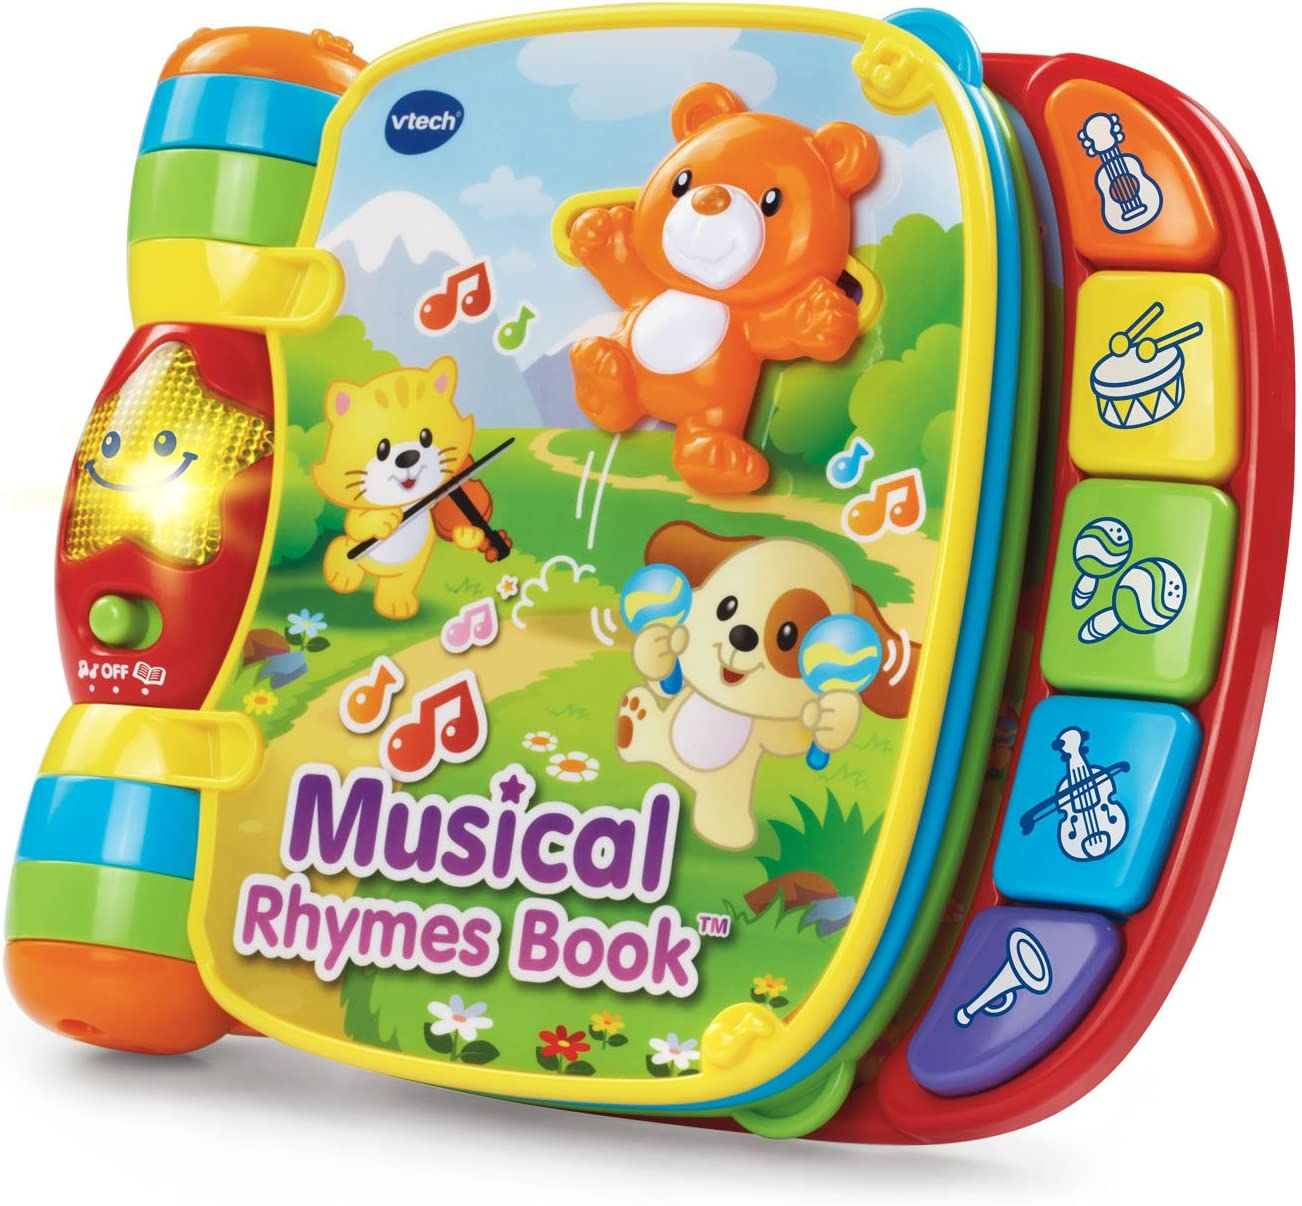 VTech Musical Rhymes Book Baby Toy Toddler Educational Learning Red 6-36 Months